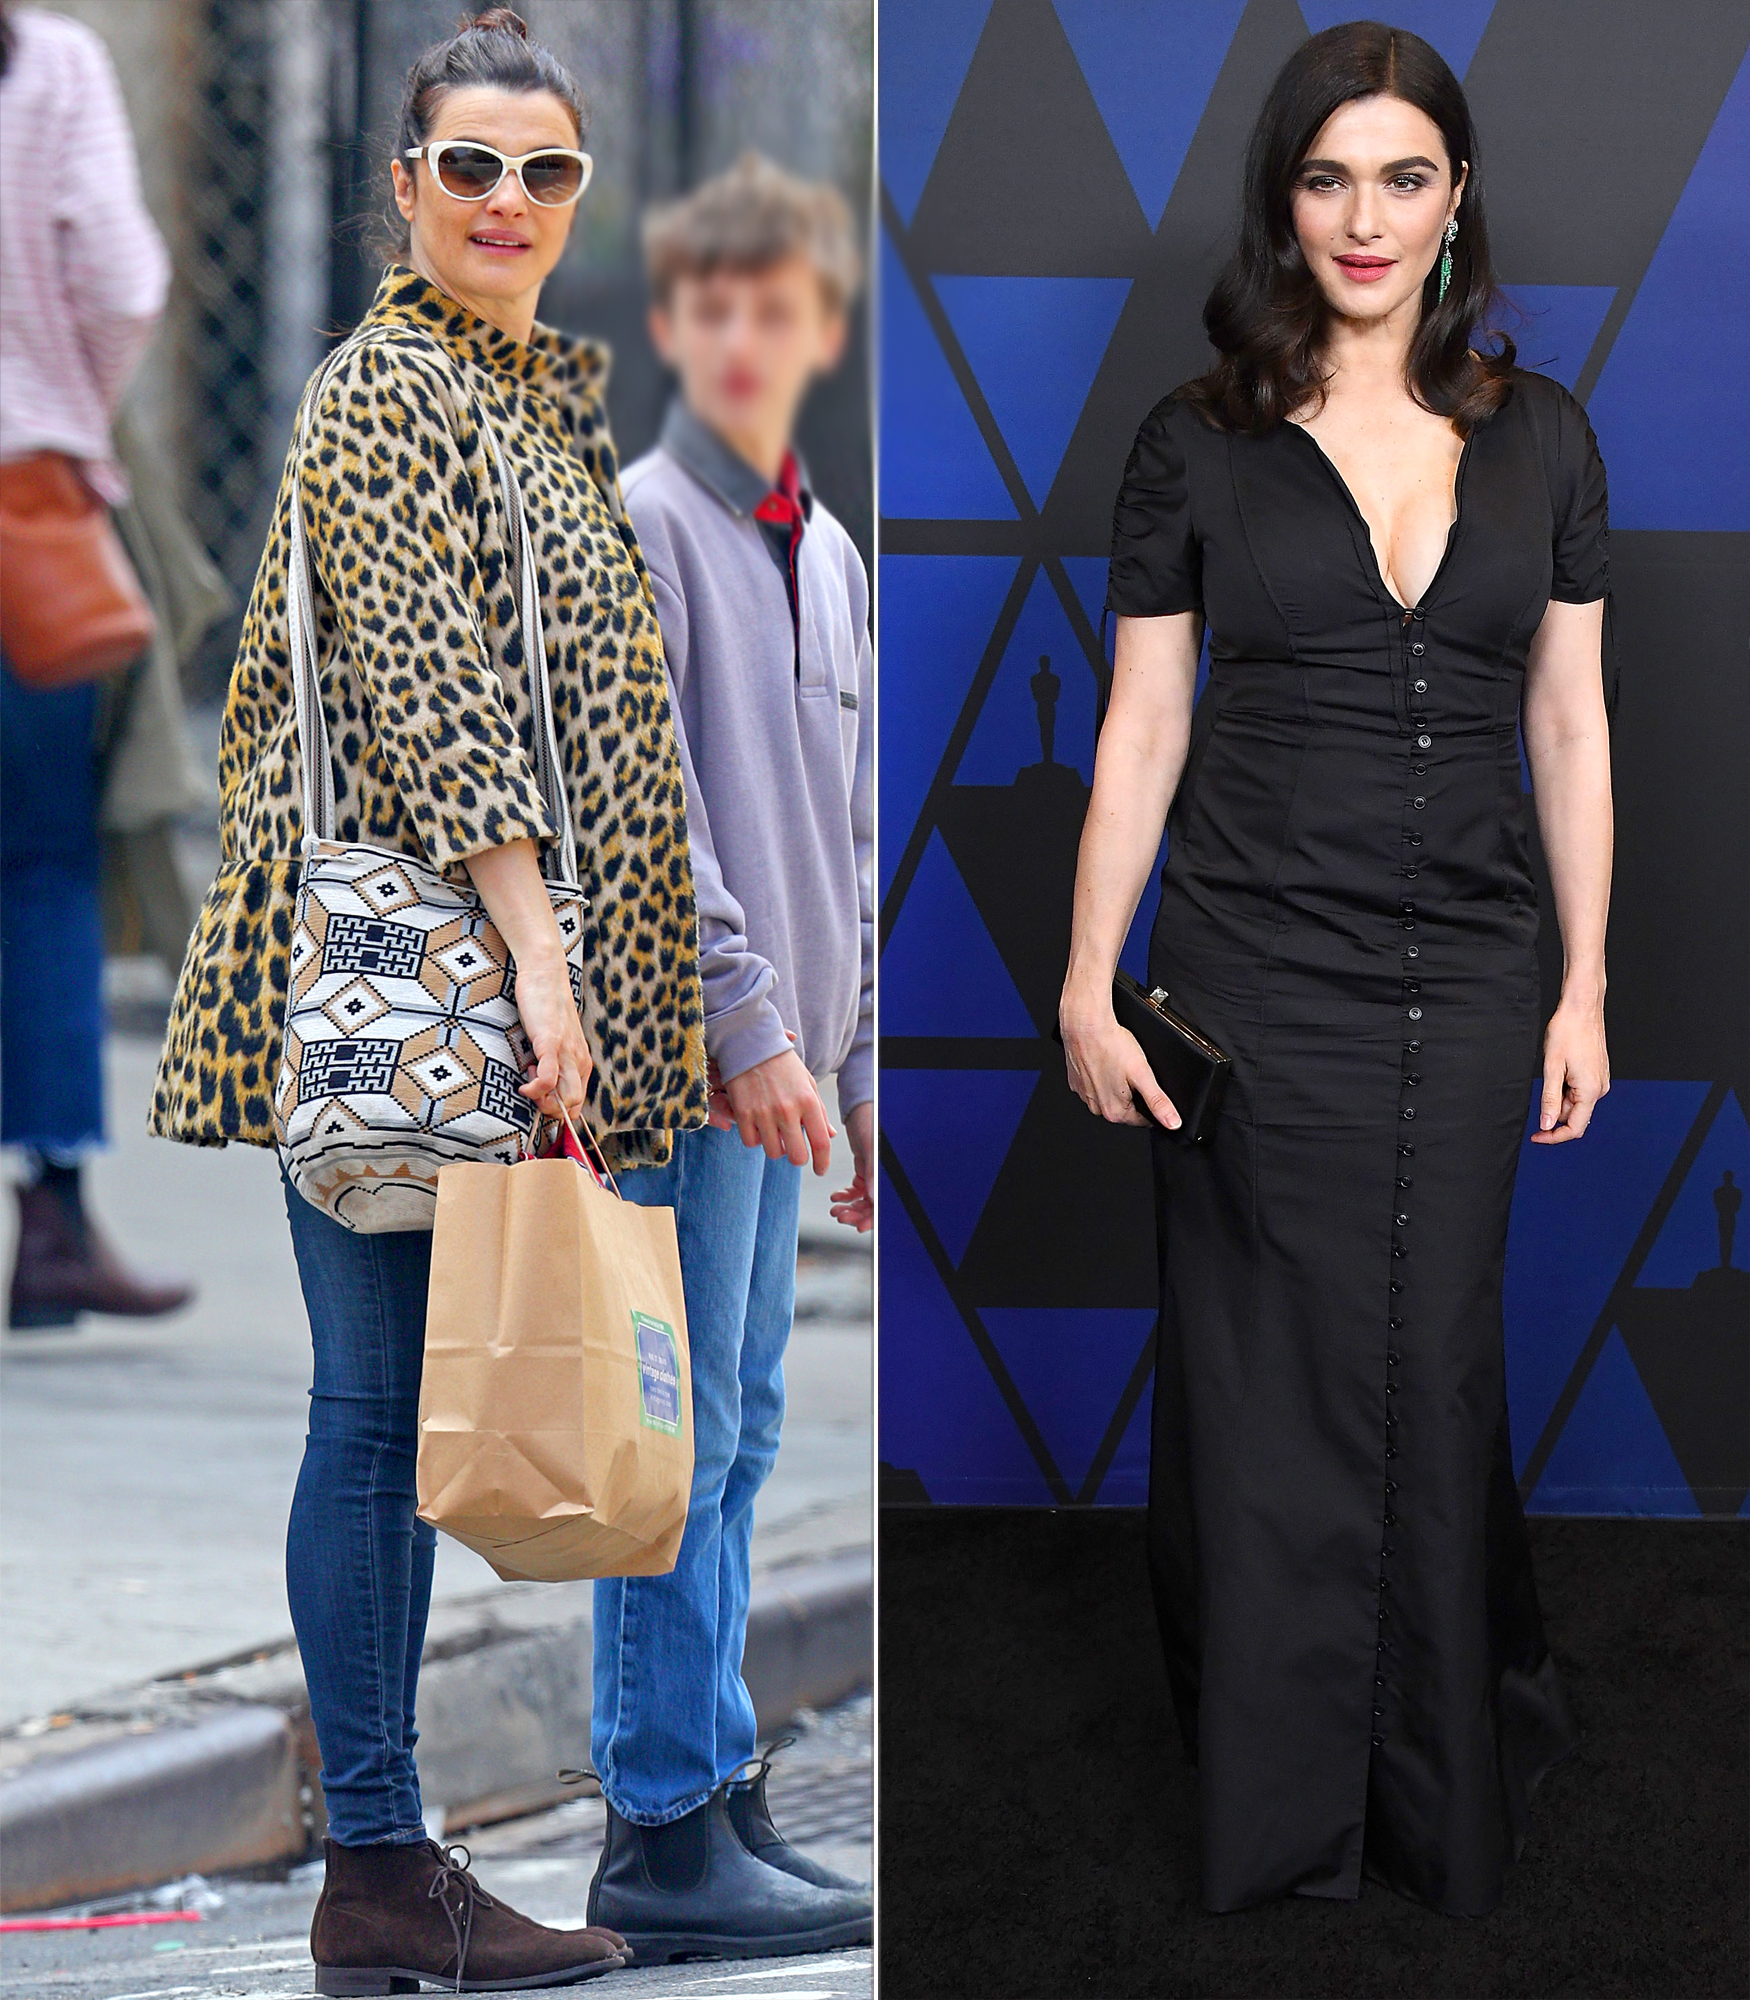 celebrity baby weight loss 2018 - The British actress gave birth to her second child, a daughter, with husband Daniel Craig, in late summer. At the Governor's Awards in Hollywood on November 18 (right), the 48-year-old was already slim.